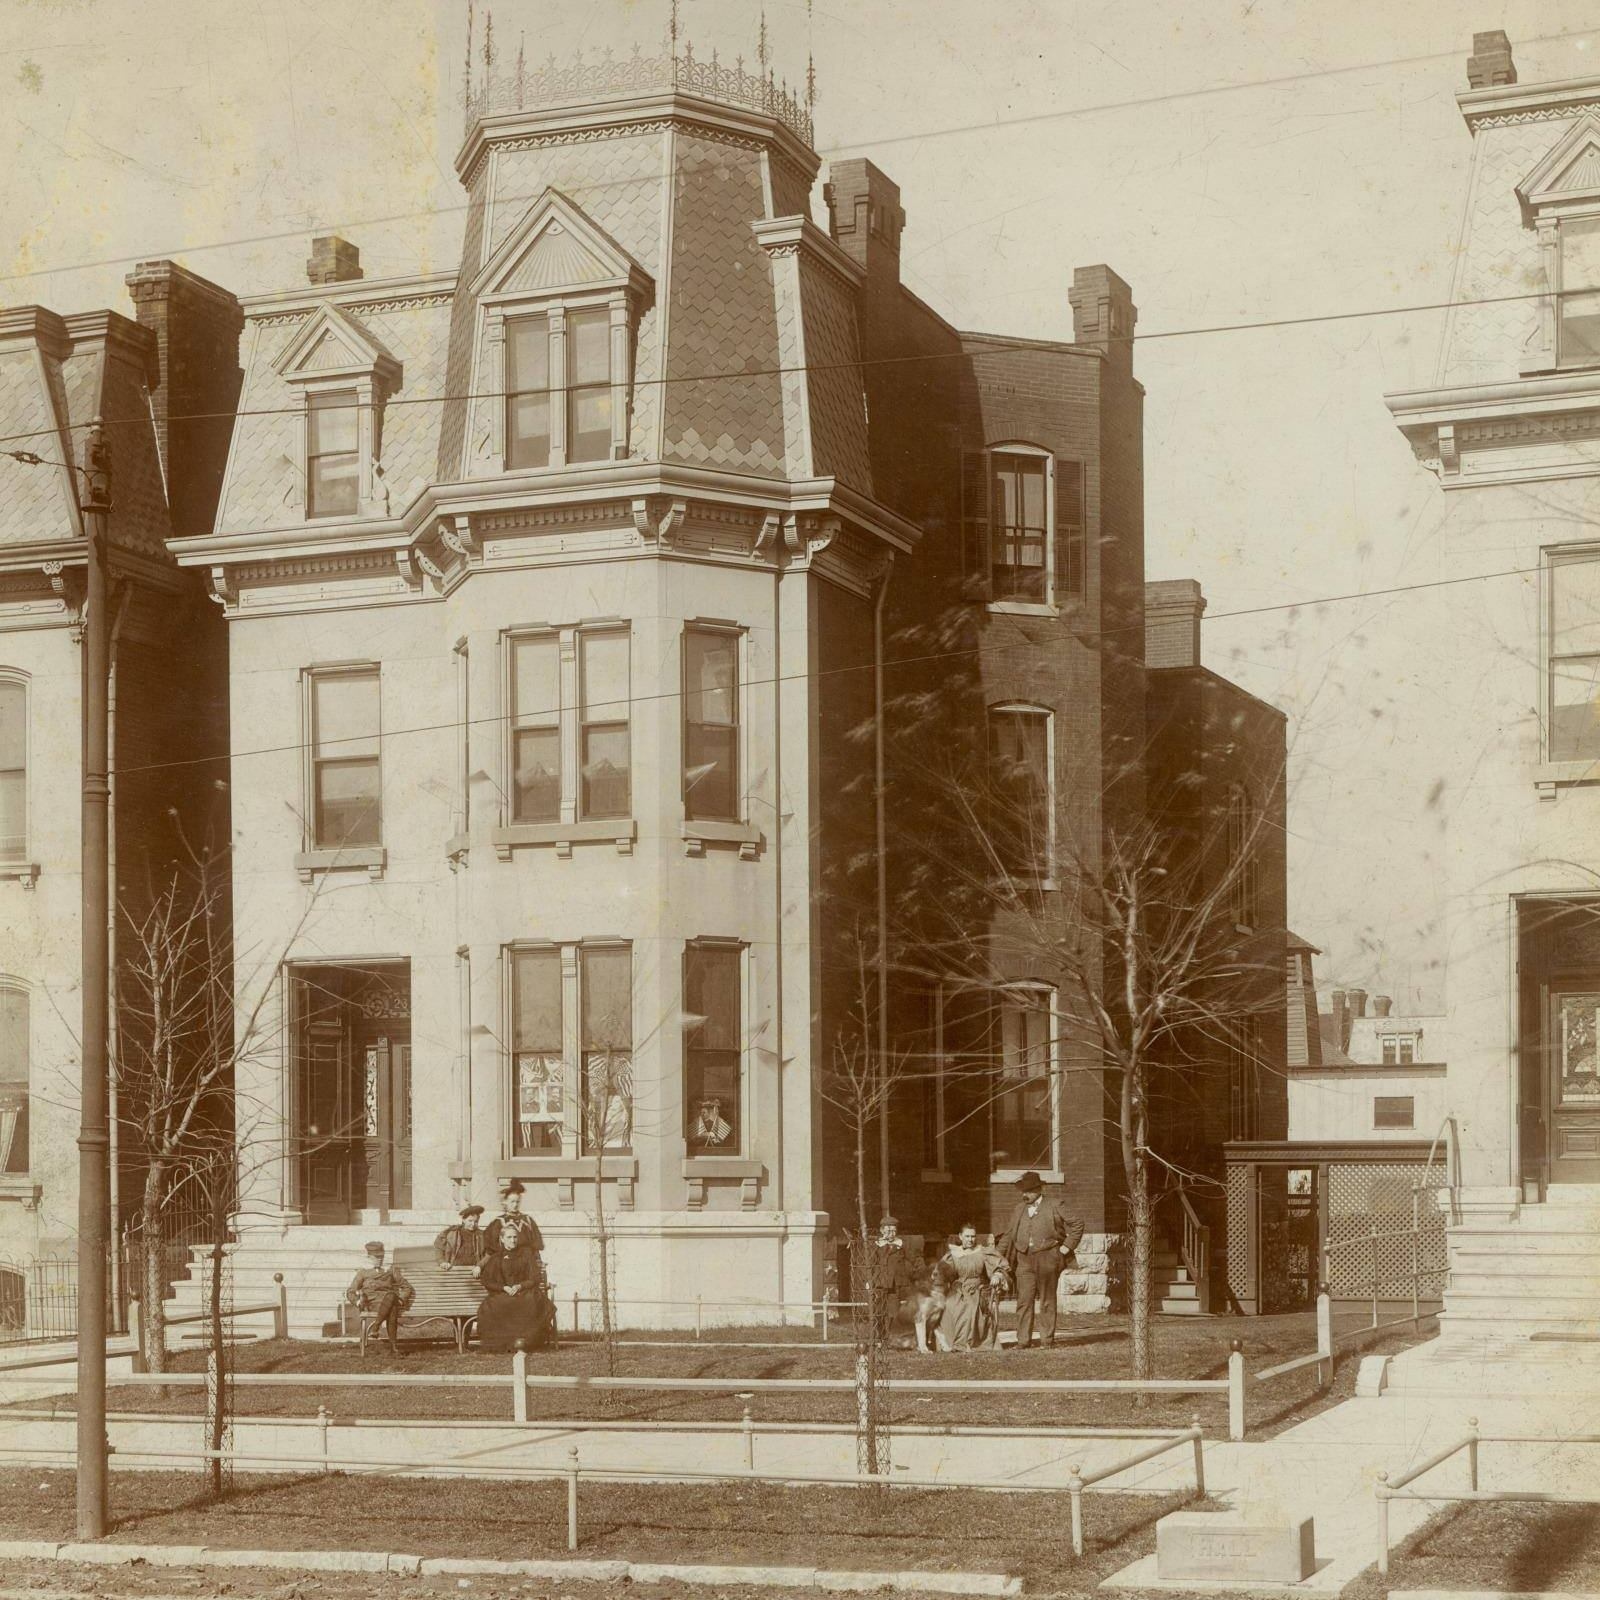 Charles S. Brown house, a 2nd Empire Strikes Back